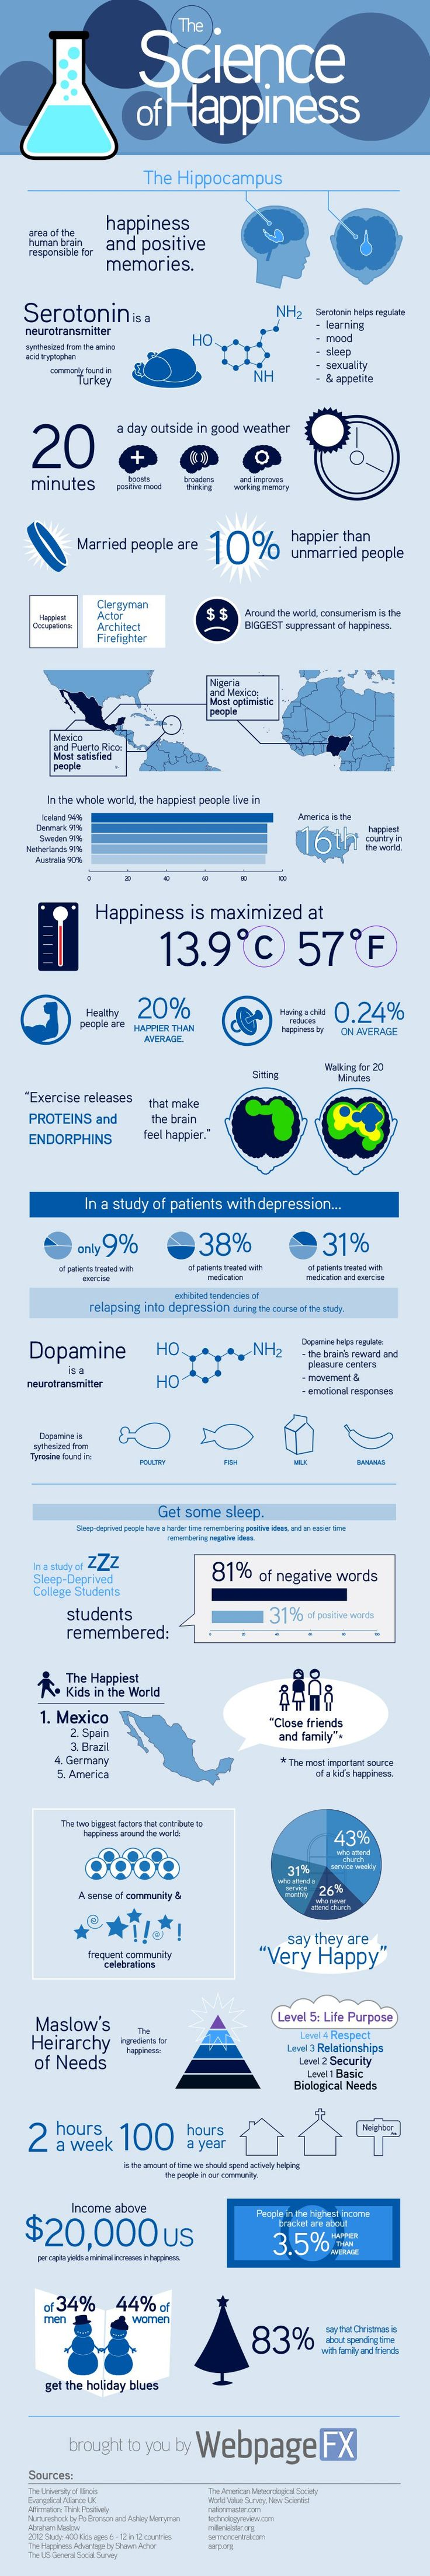 Are You Happy? This Infographic Explains the Science Behind Human Happiness Photo